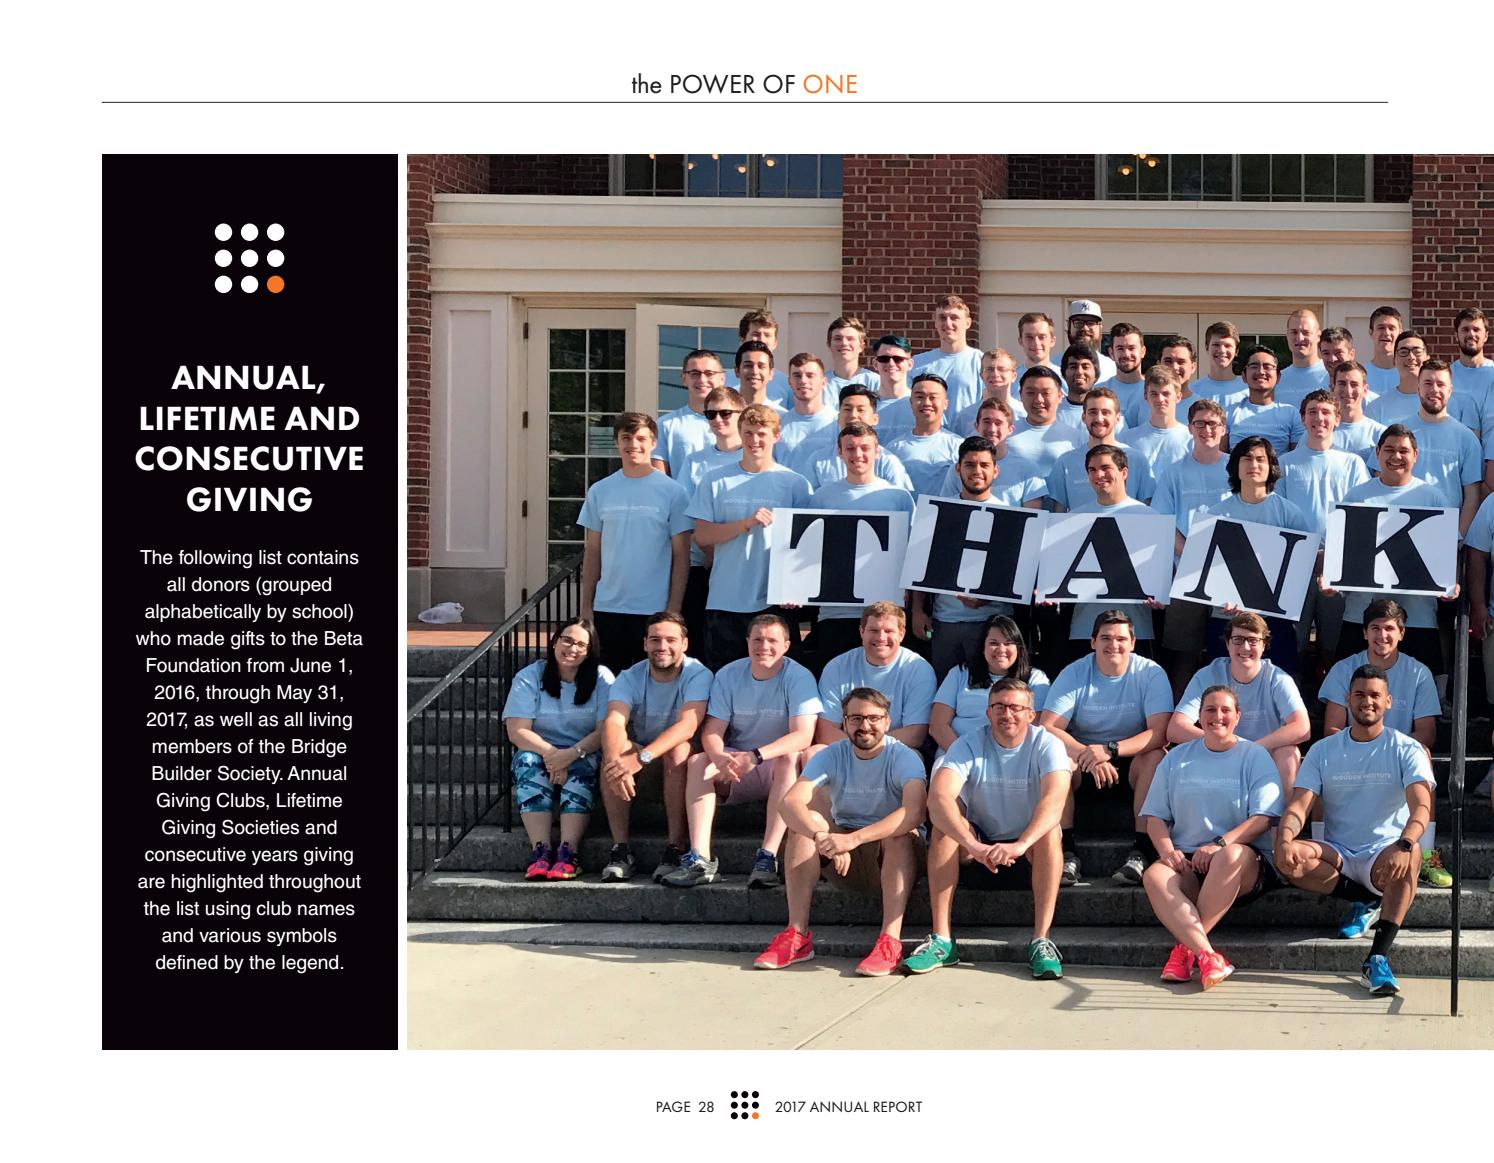 2017 beta theta pi foundation annual report by beta theta pi - issuu